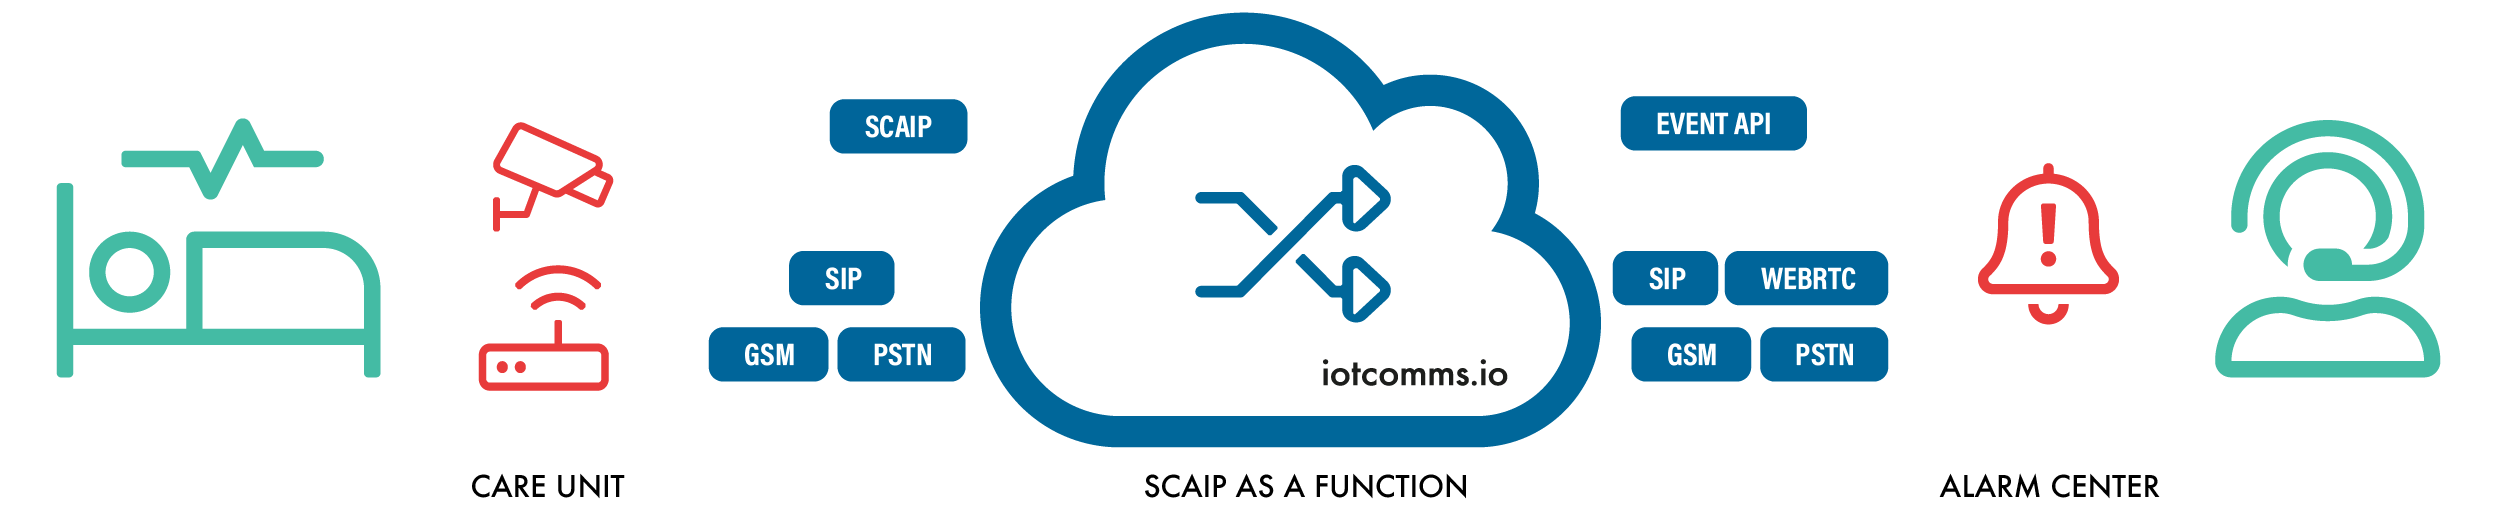 Make your alarm center SCAIP compliant with SCAIP as a function